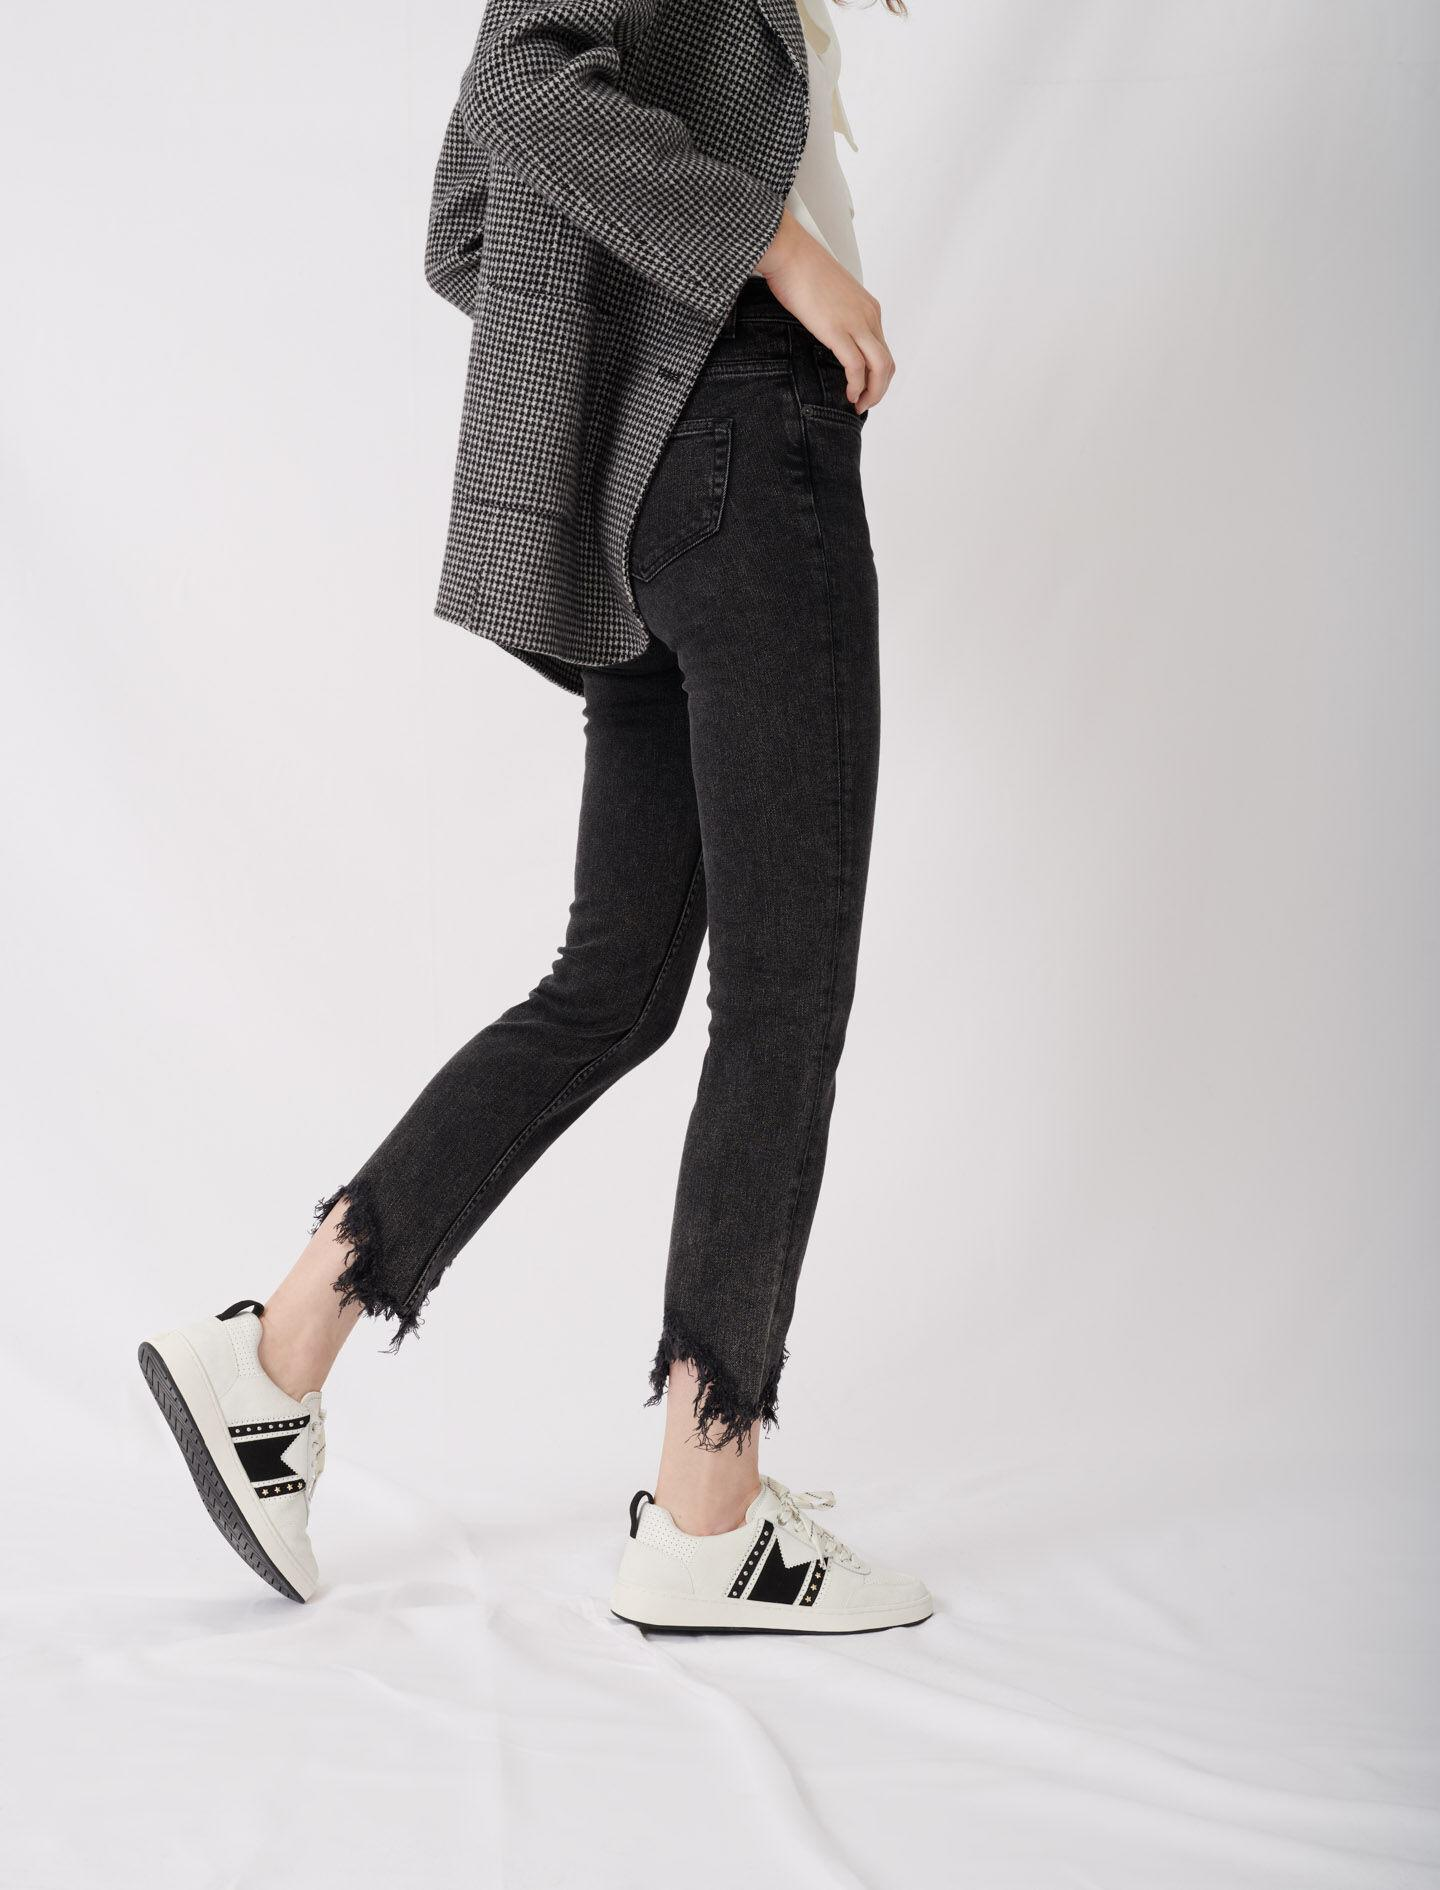 BLACK AND WHITE LEATHER SNEAKERS 4